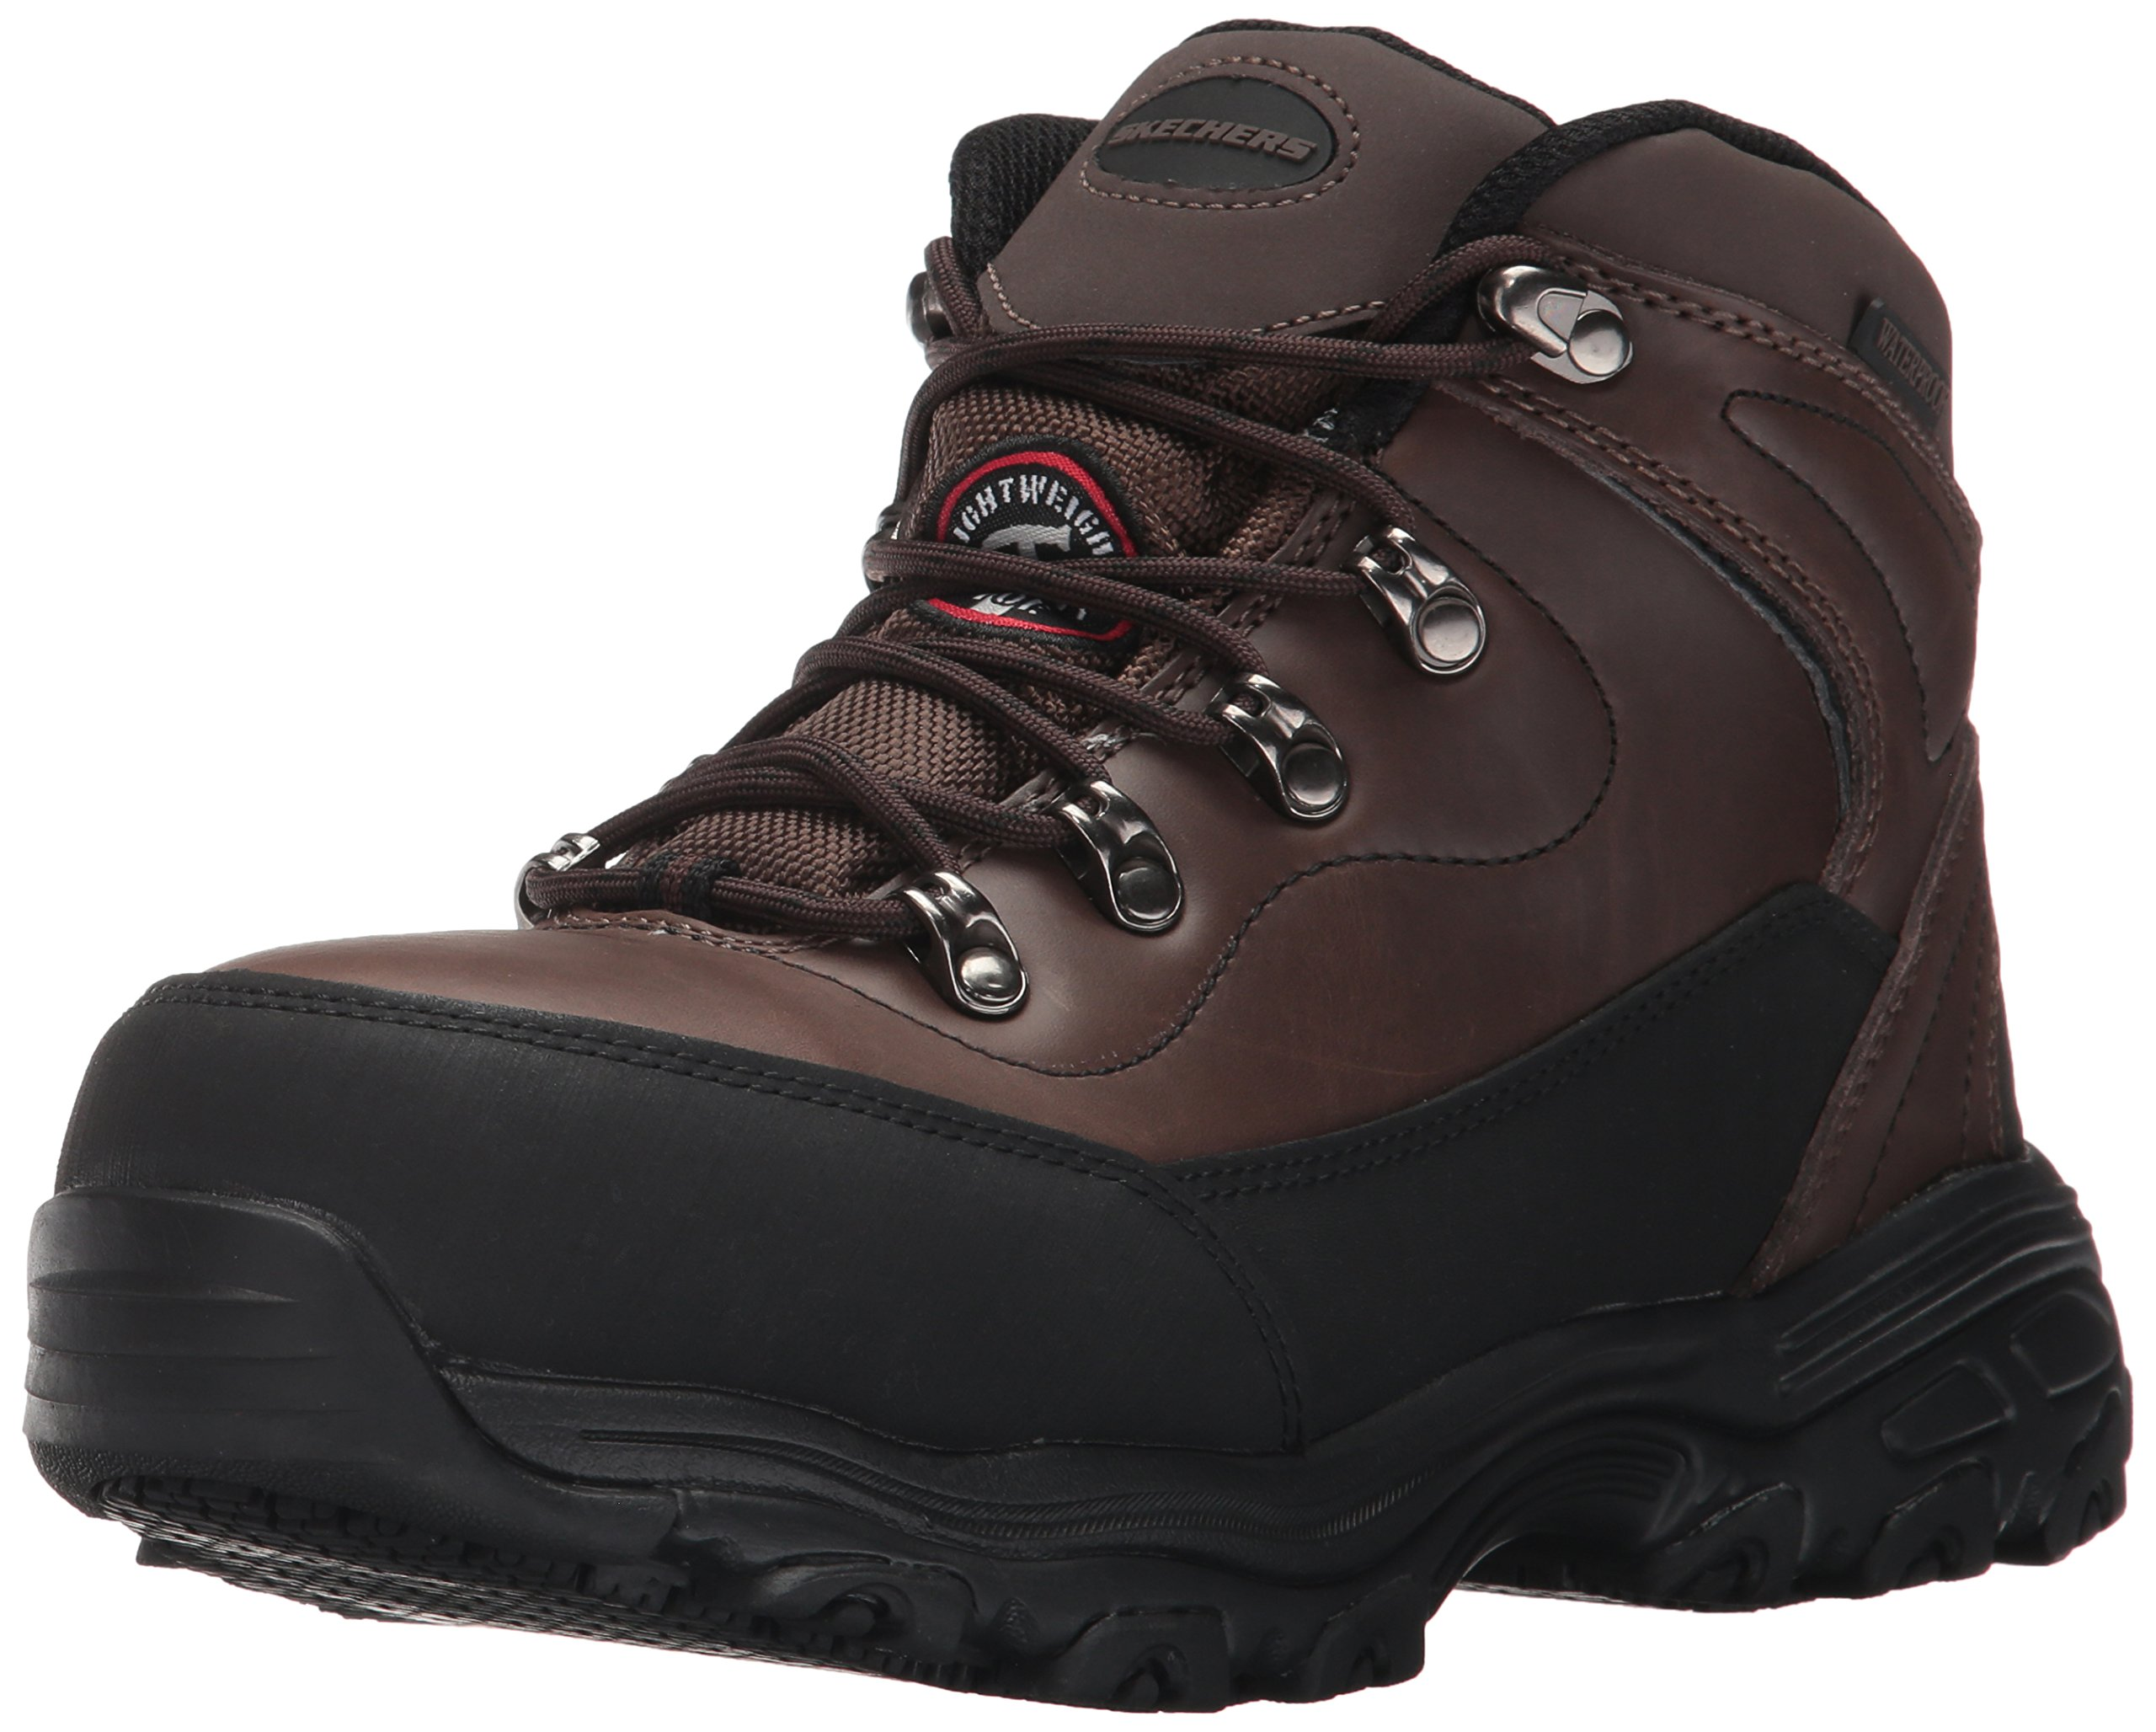 Skechers Women's D Lite Amasa Work Boot,Brown,9 M US